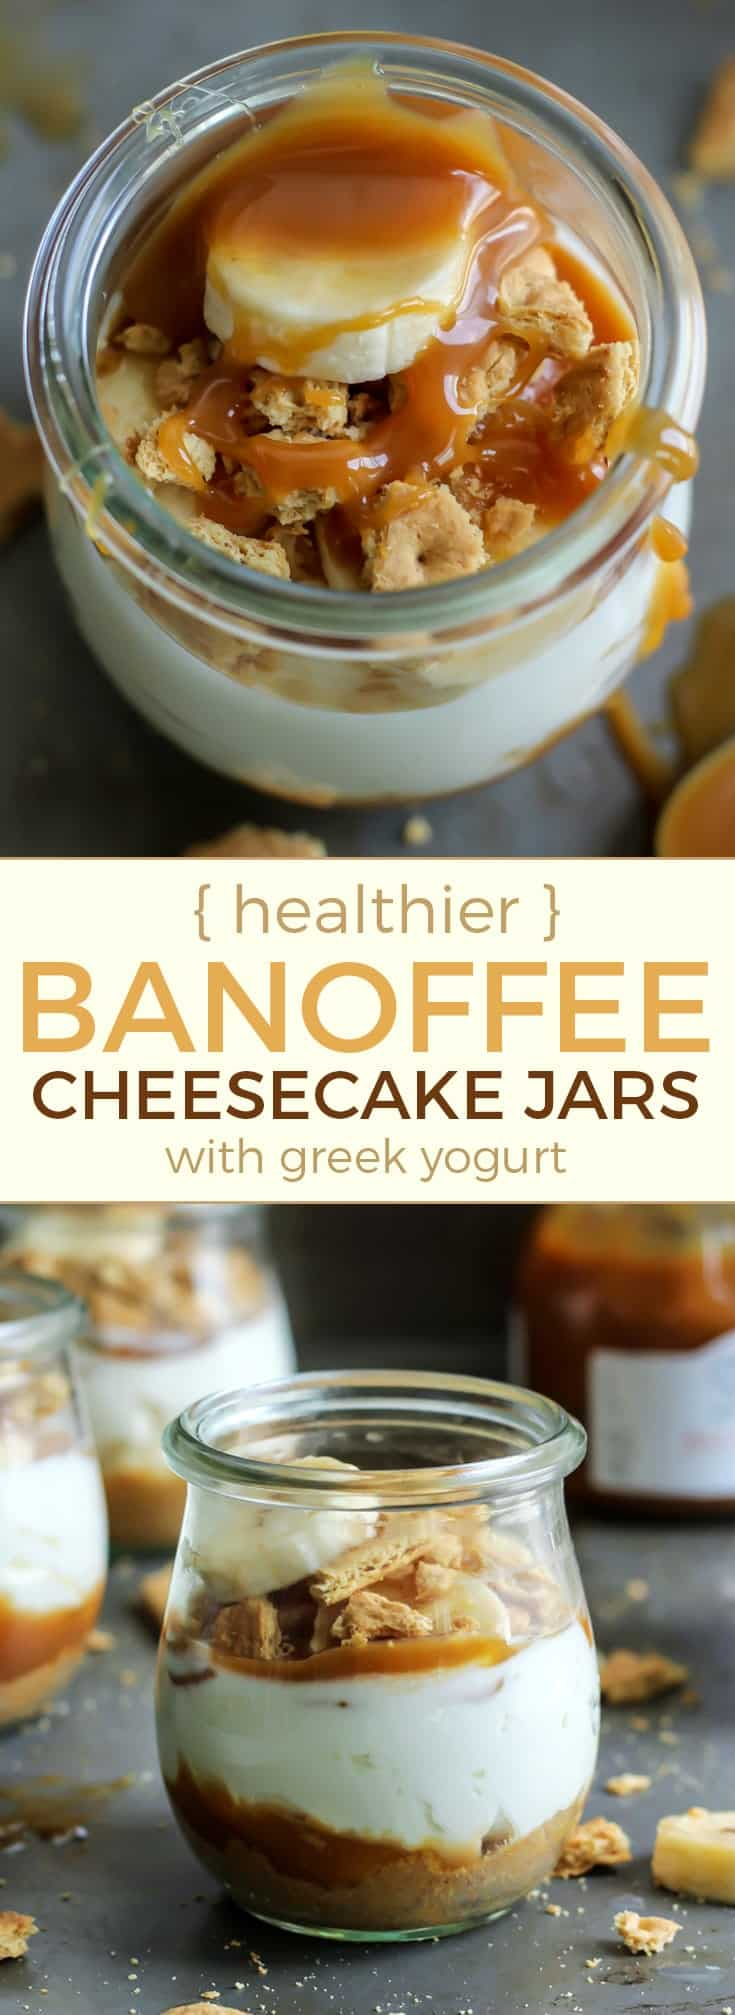 These Banoffee Cheesecake Jars are a fun healthier treat! No-bake and gluten-free friendly! Just use your favorite GF cookie or graham crackers for the crust